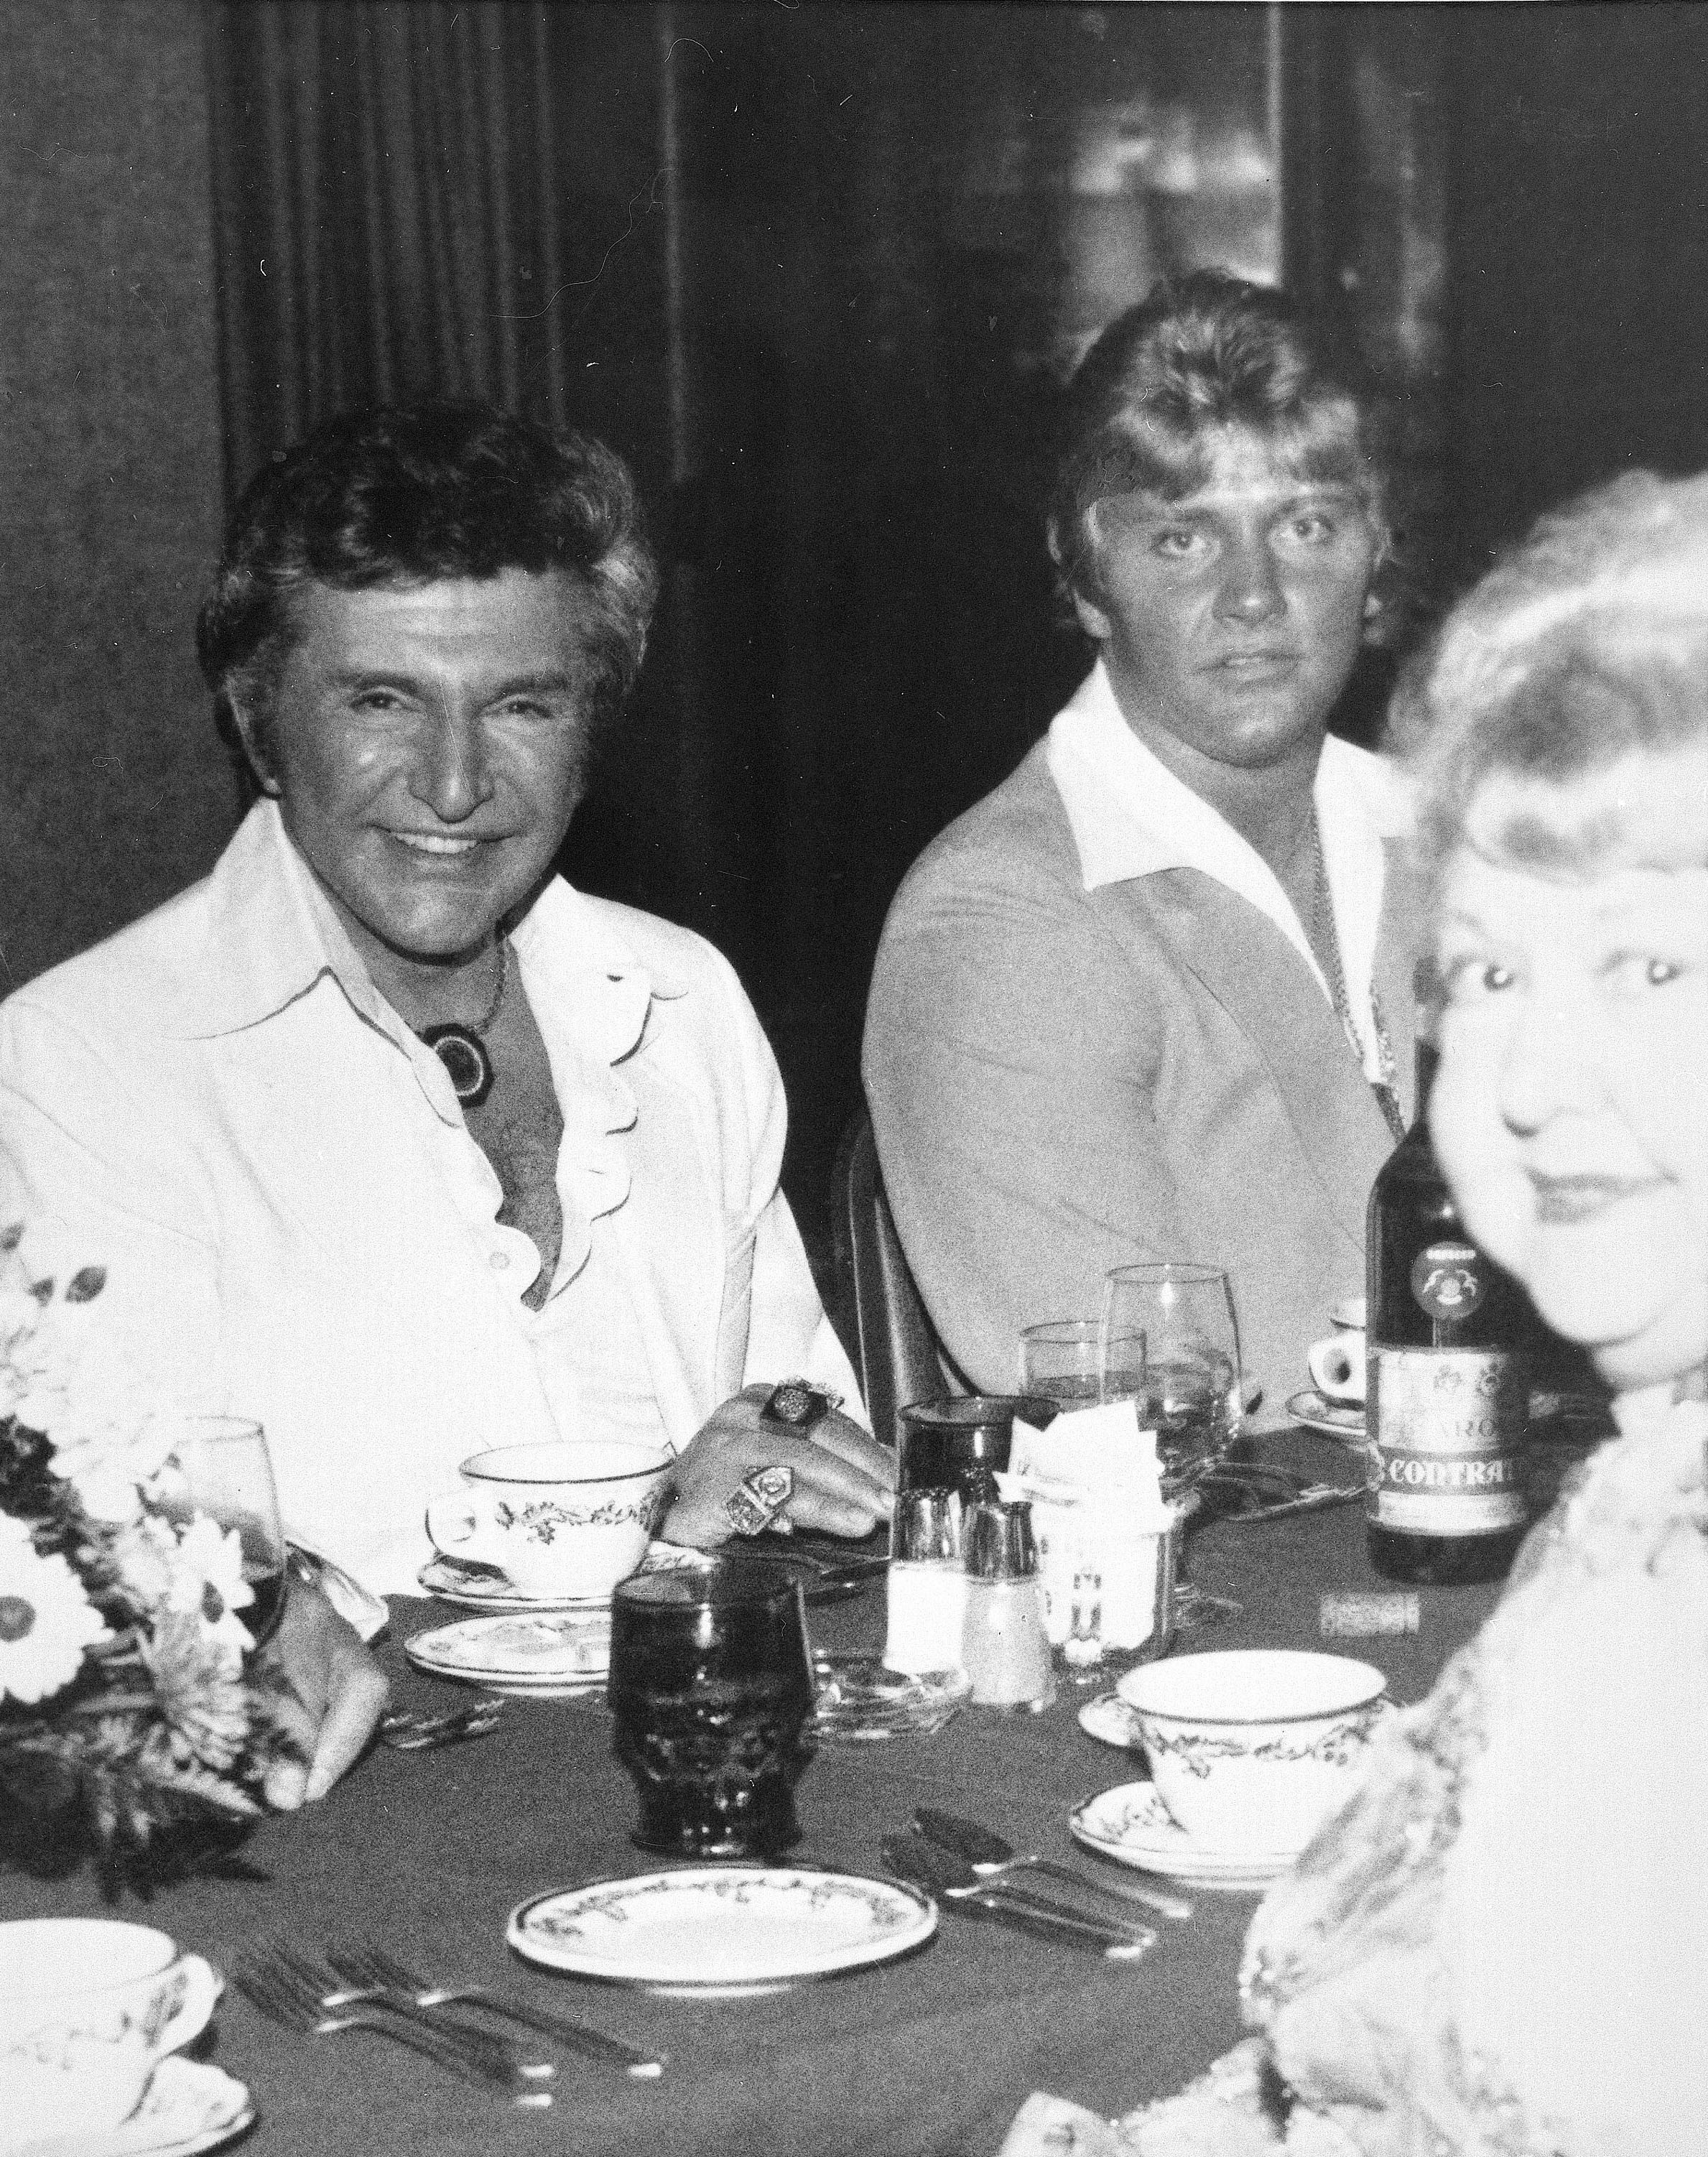 Entertainer Liberace (left), with Scott Thorson, often described during their time together as his bodyguard, chauffeur and confidant, at a Boston-area restaurant in 1981.